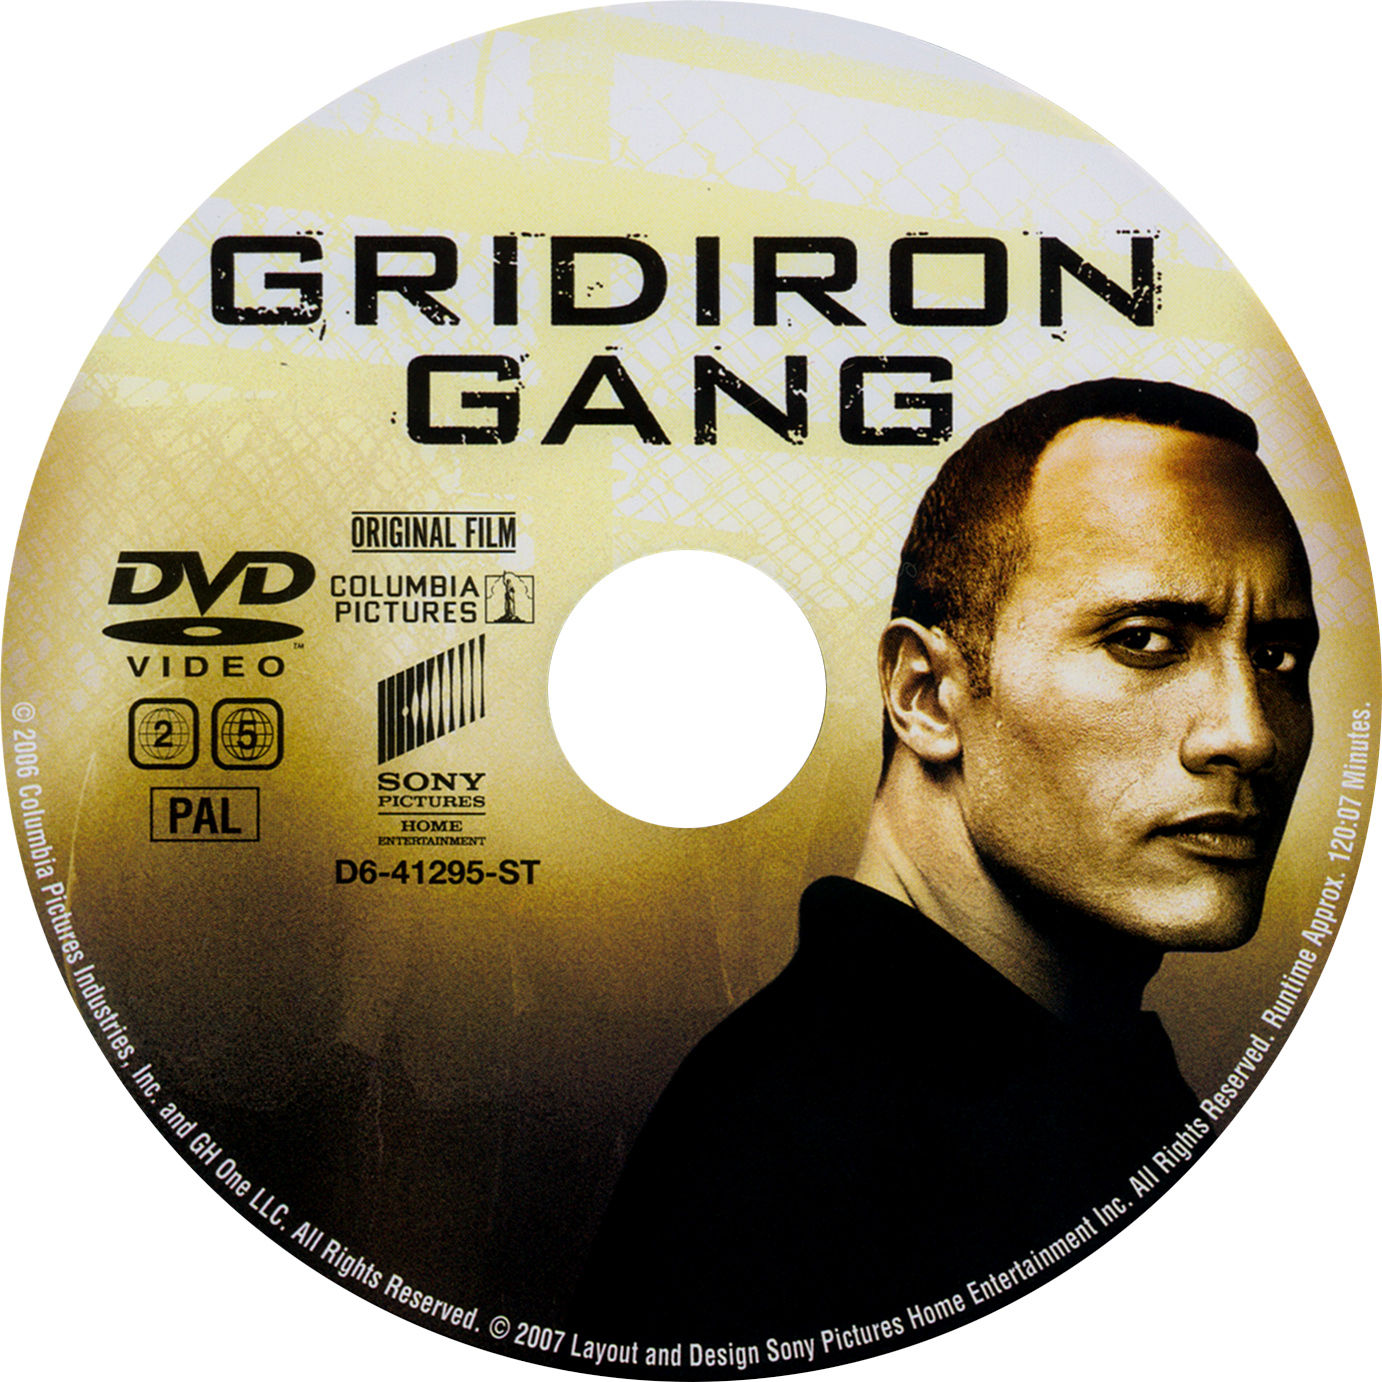 grid iron gang essay The 2006 film gridiron gang is based loosely on a true story about adolescent athletes in the kilpatrick detention center although the film is filled with cliches, it actually captures.